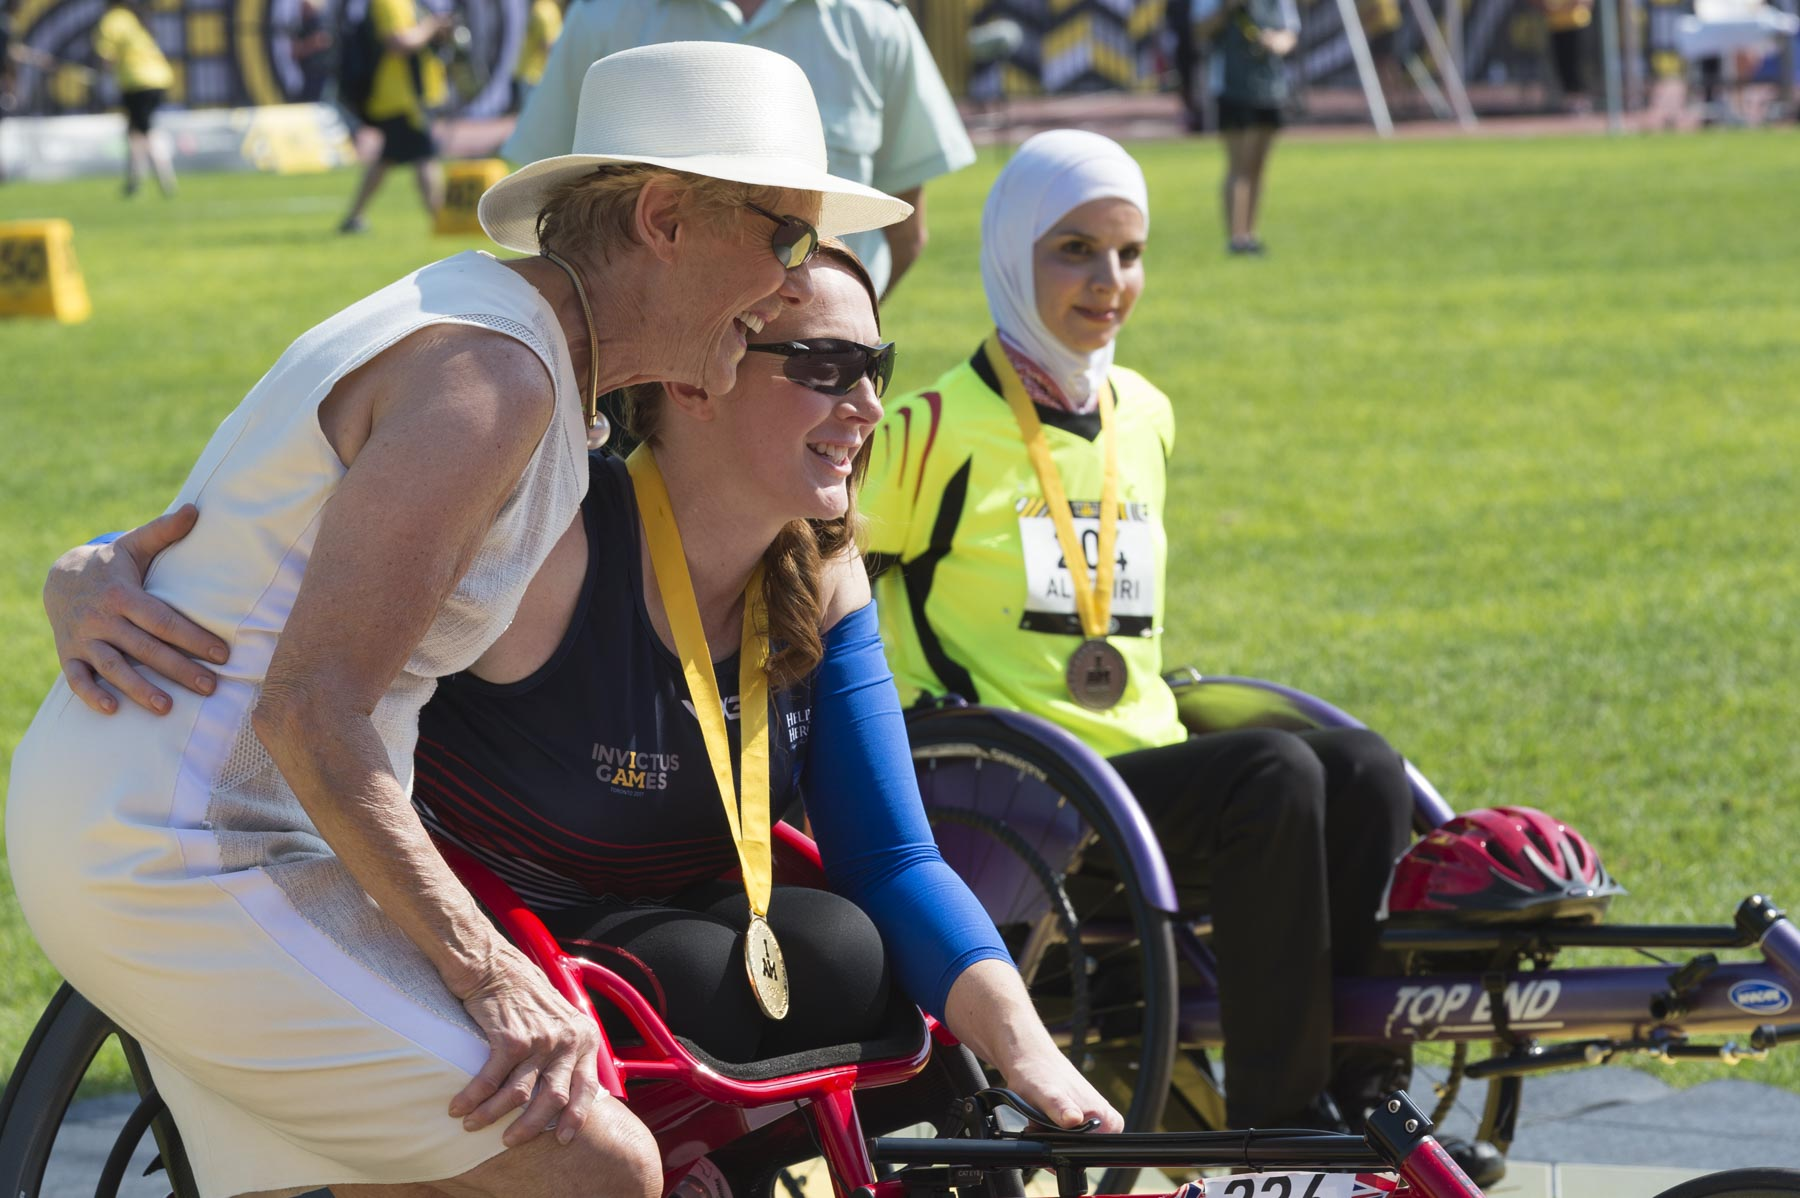 As Honorary Captain (Navy) for Military Personnel Command of the Canadian Armed Forces, Her Excellency presented medals to the top three competitors in the women's 100-metre wheelchair race.